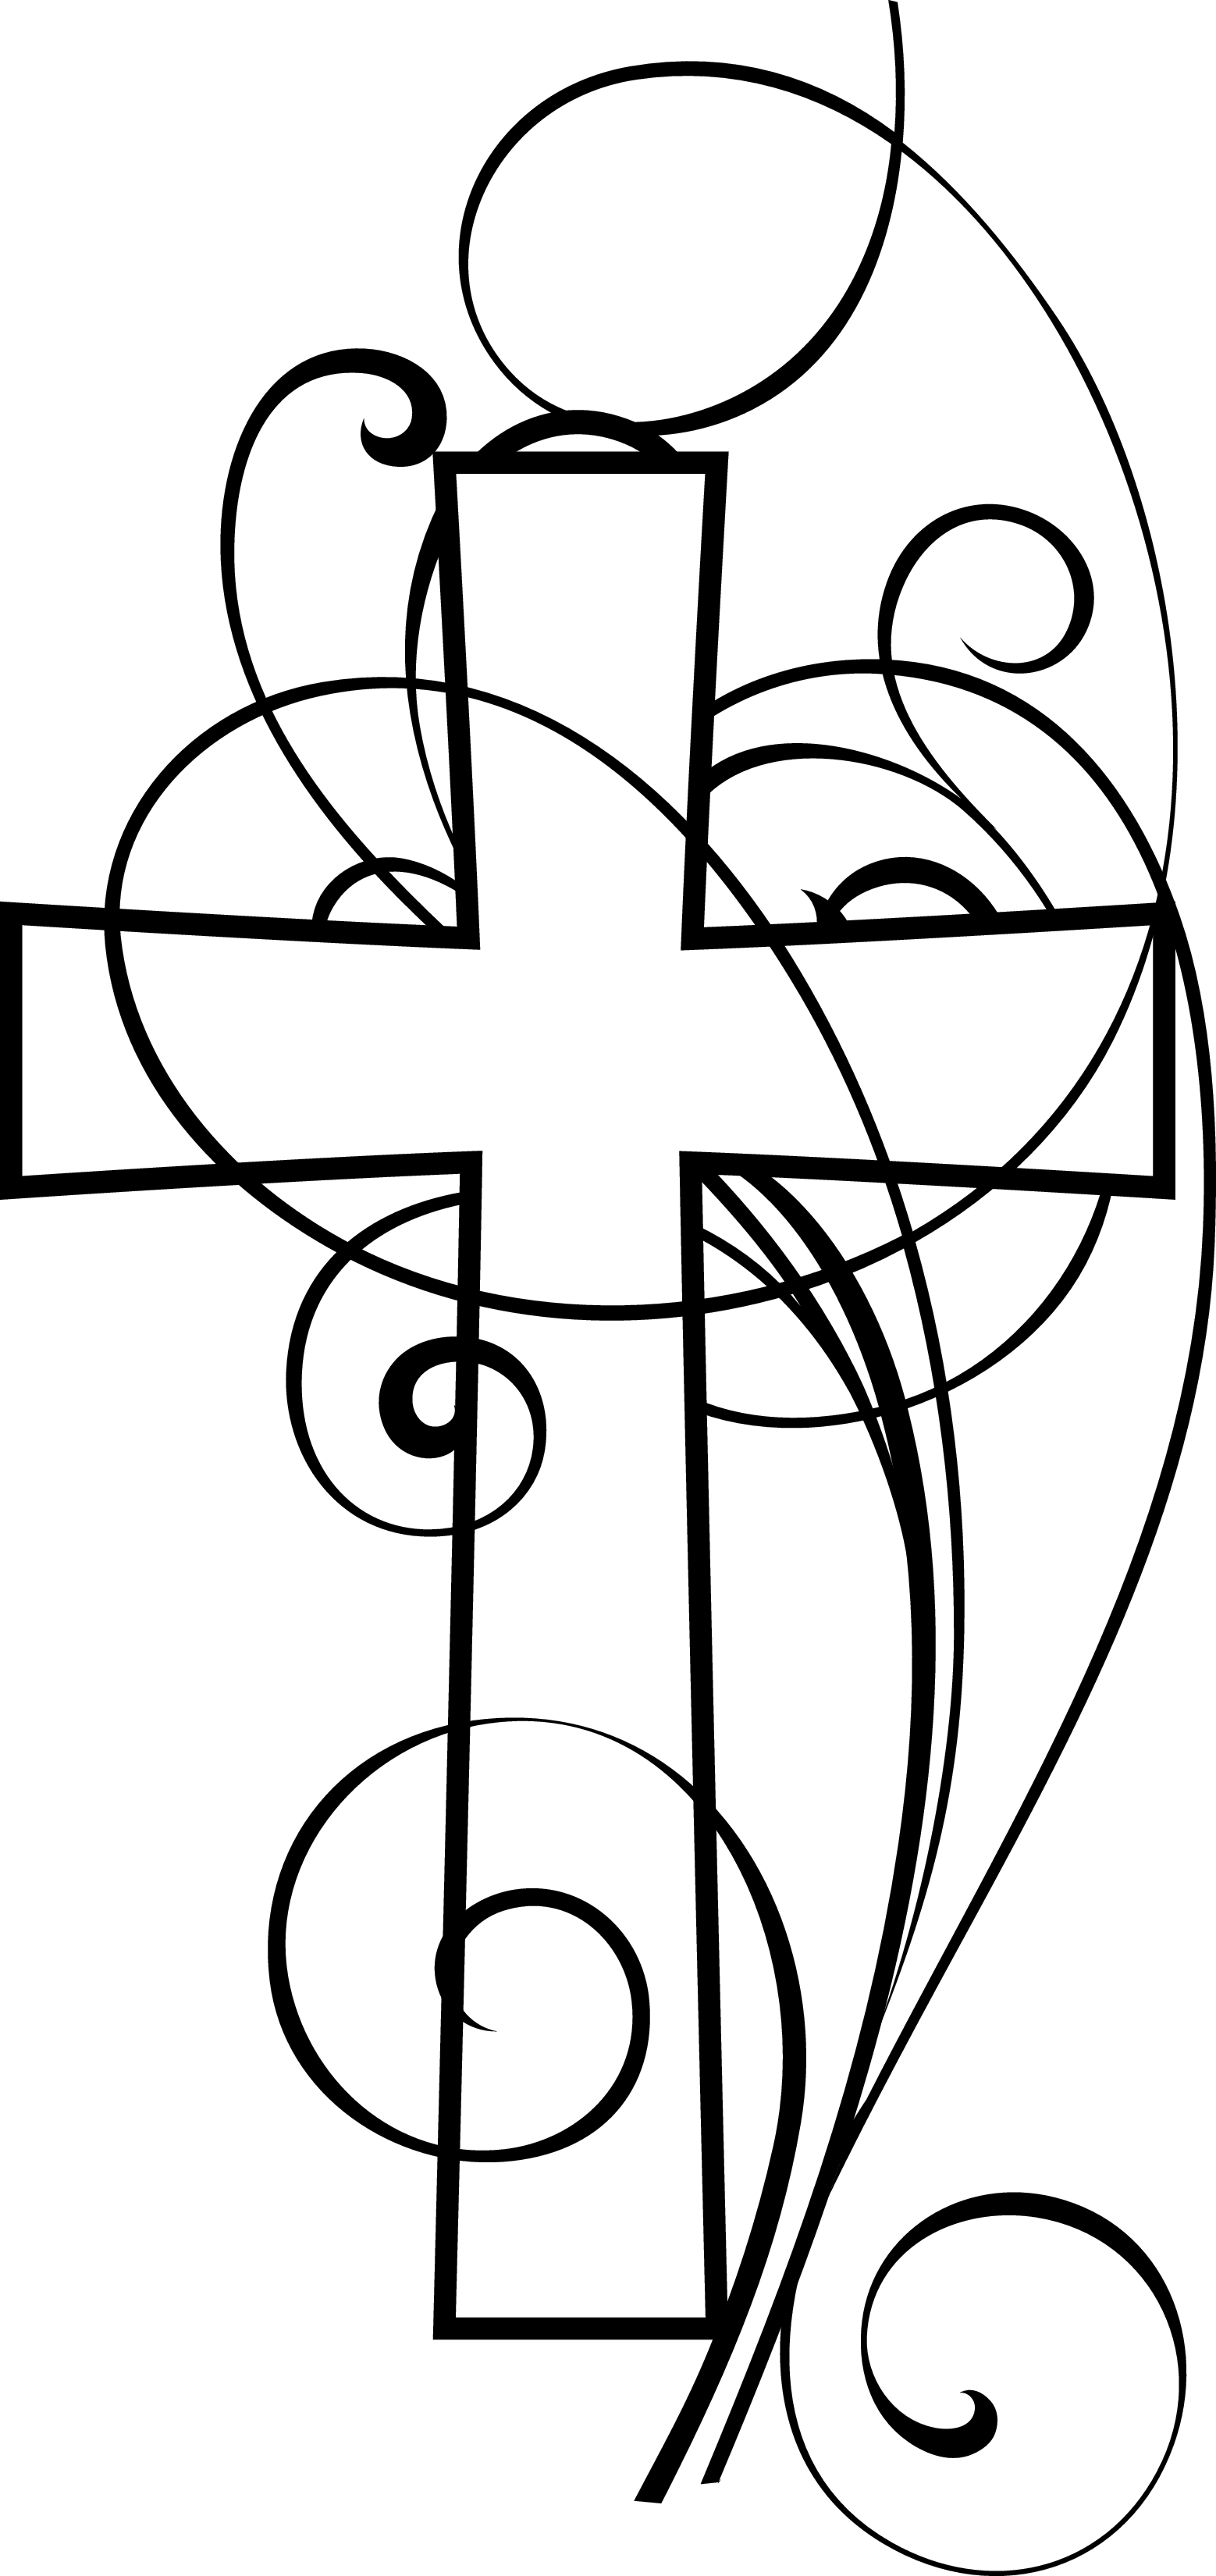 Free Black Religious Art Pictures, Download Free Clip Art.